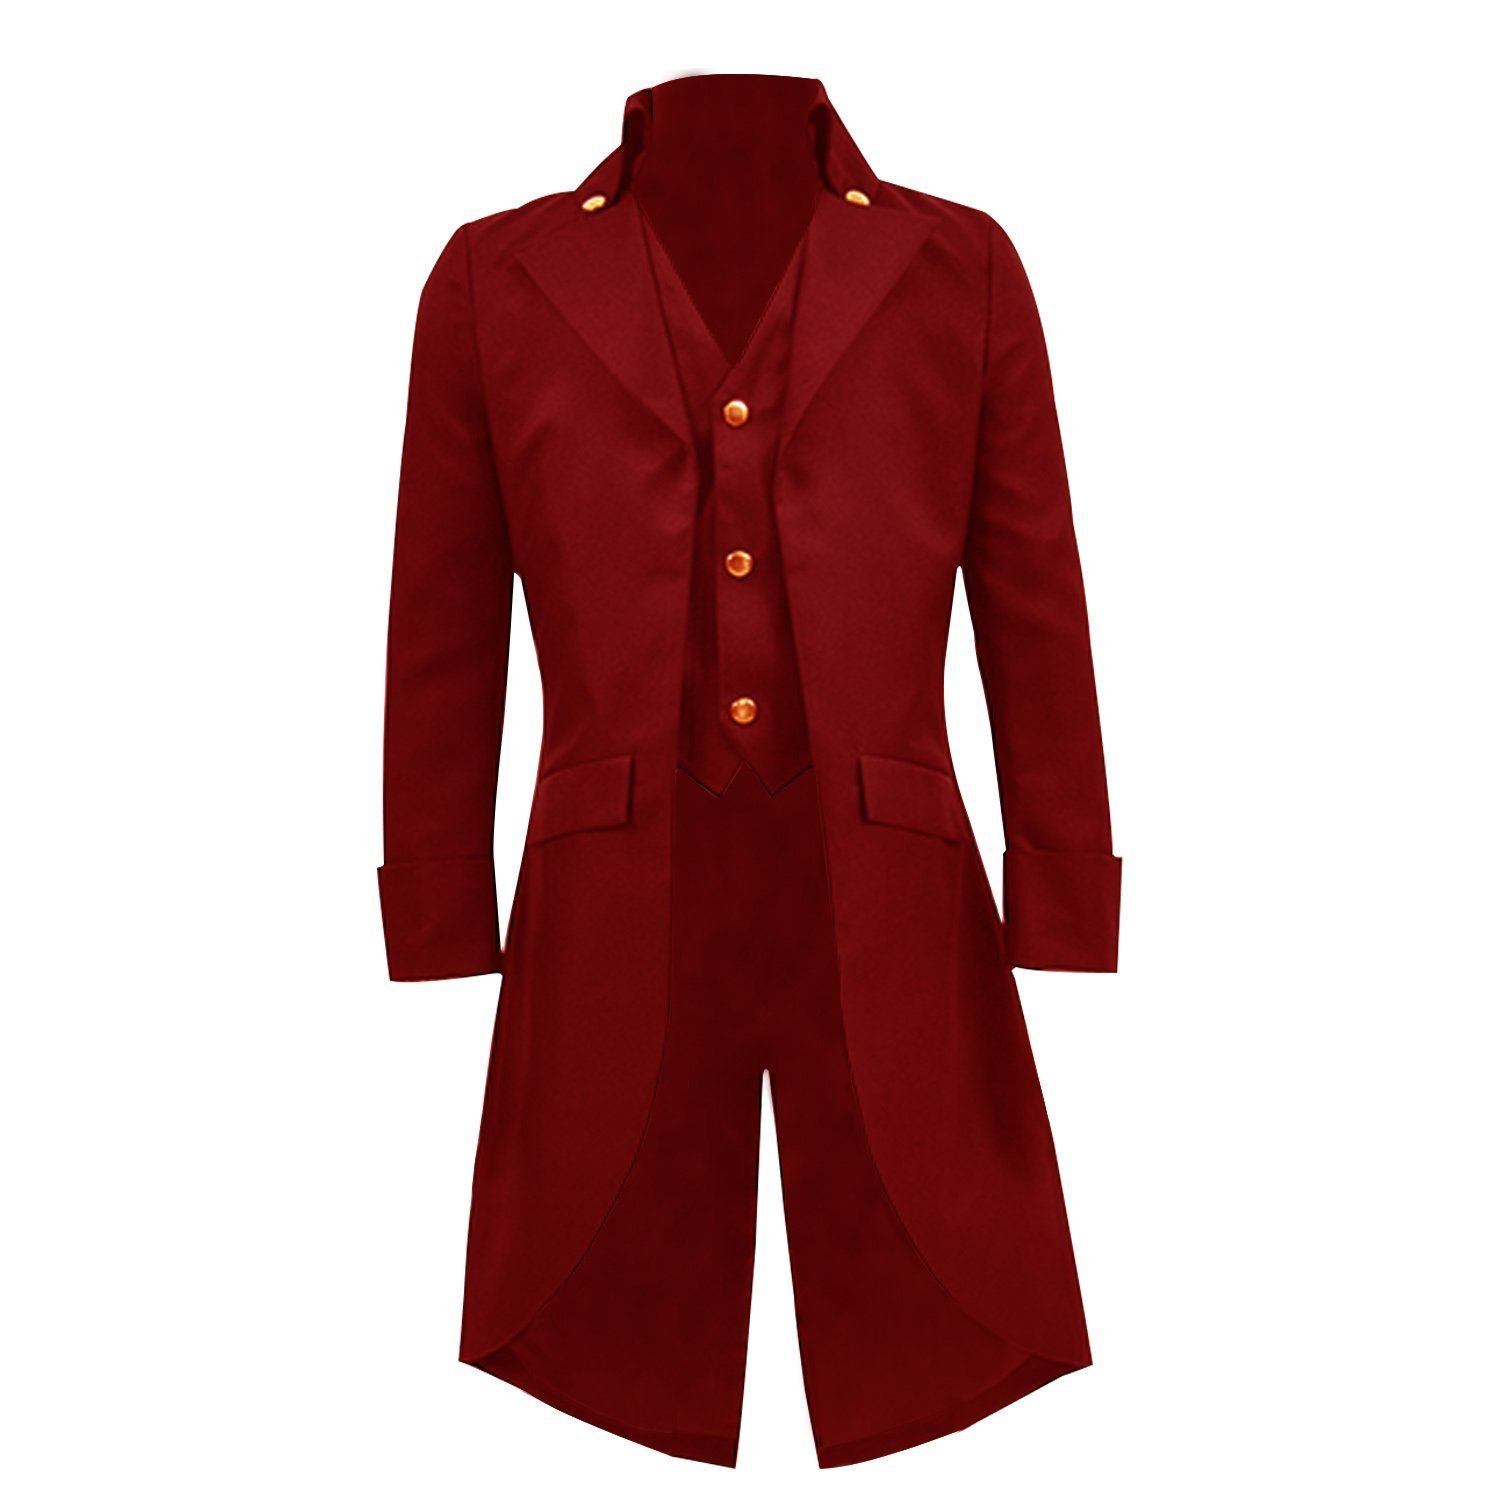 COSSKY Boys Gothic Tailcoat Jacket Steampunk Long Coat Halloween Costume (Red, 8) by COSSKY